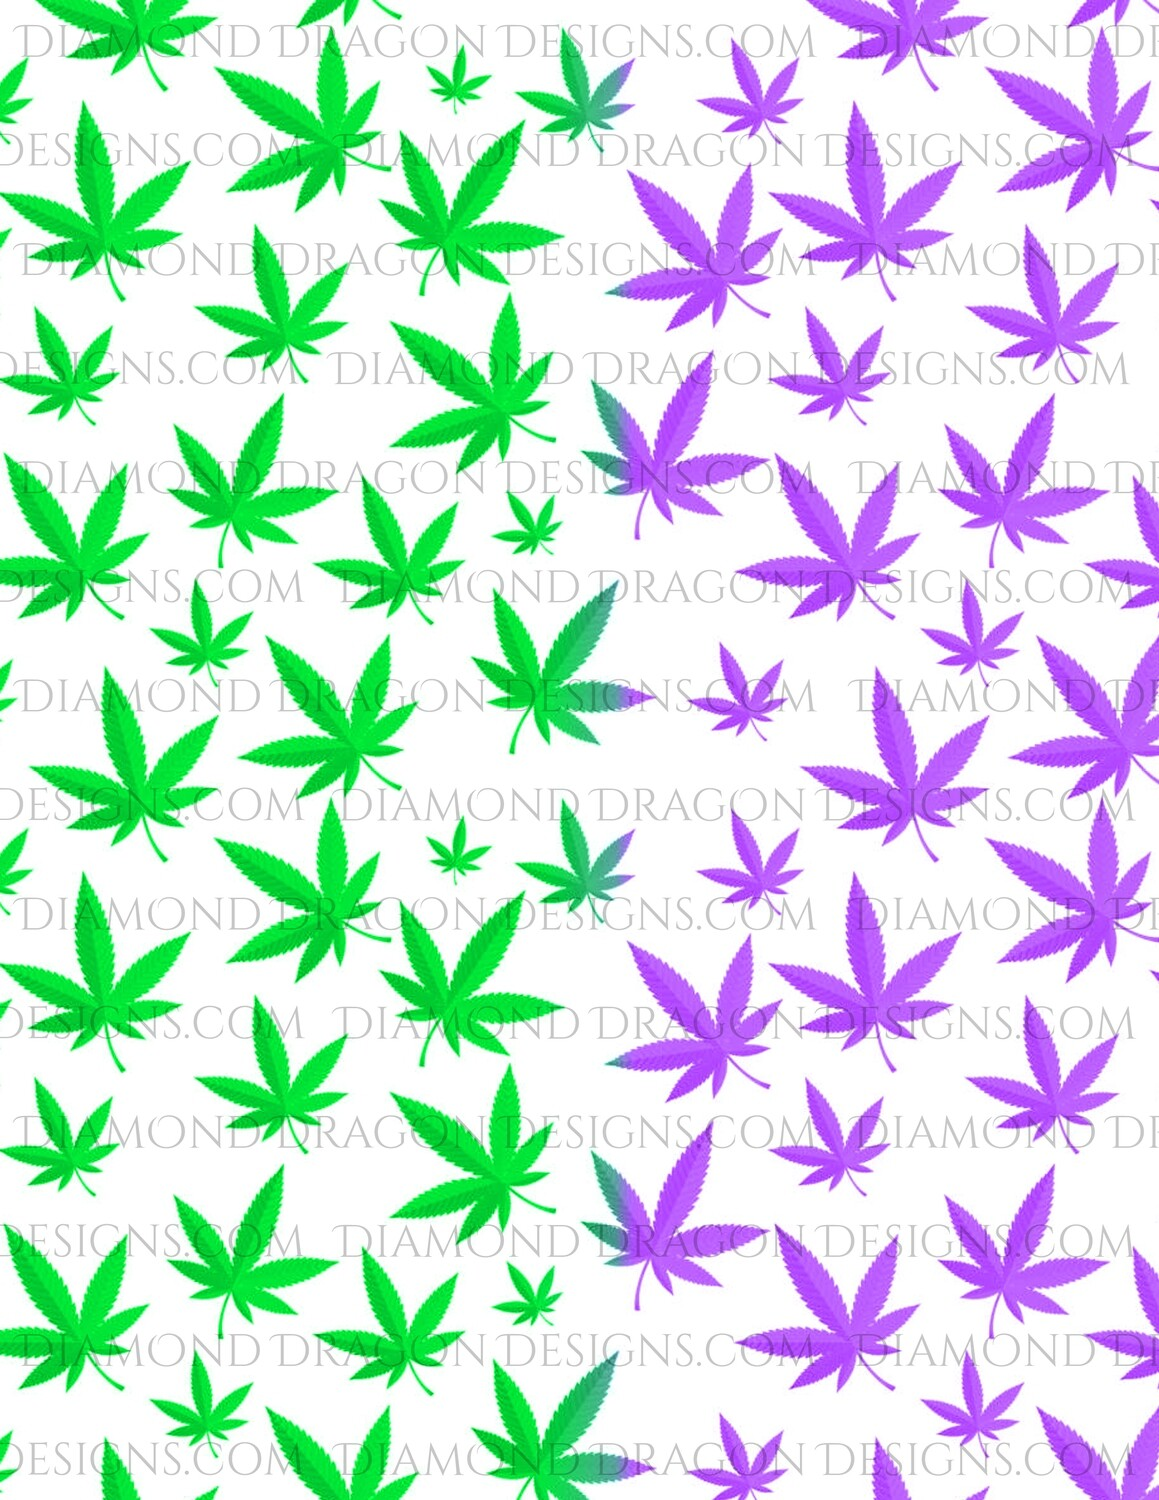 Full Page -  Pot Leaves, Green and Purple Weed Leaves, Full Page Design - Waterslide